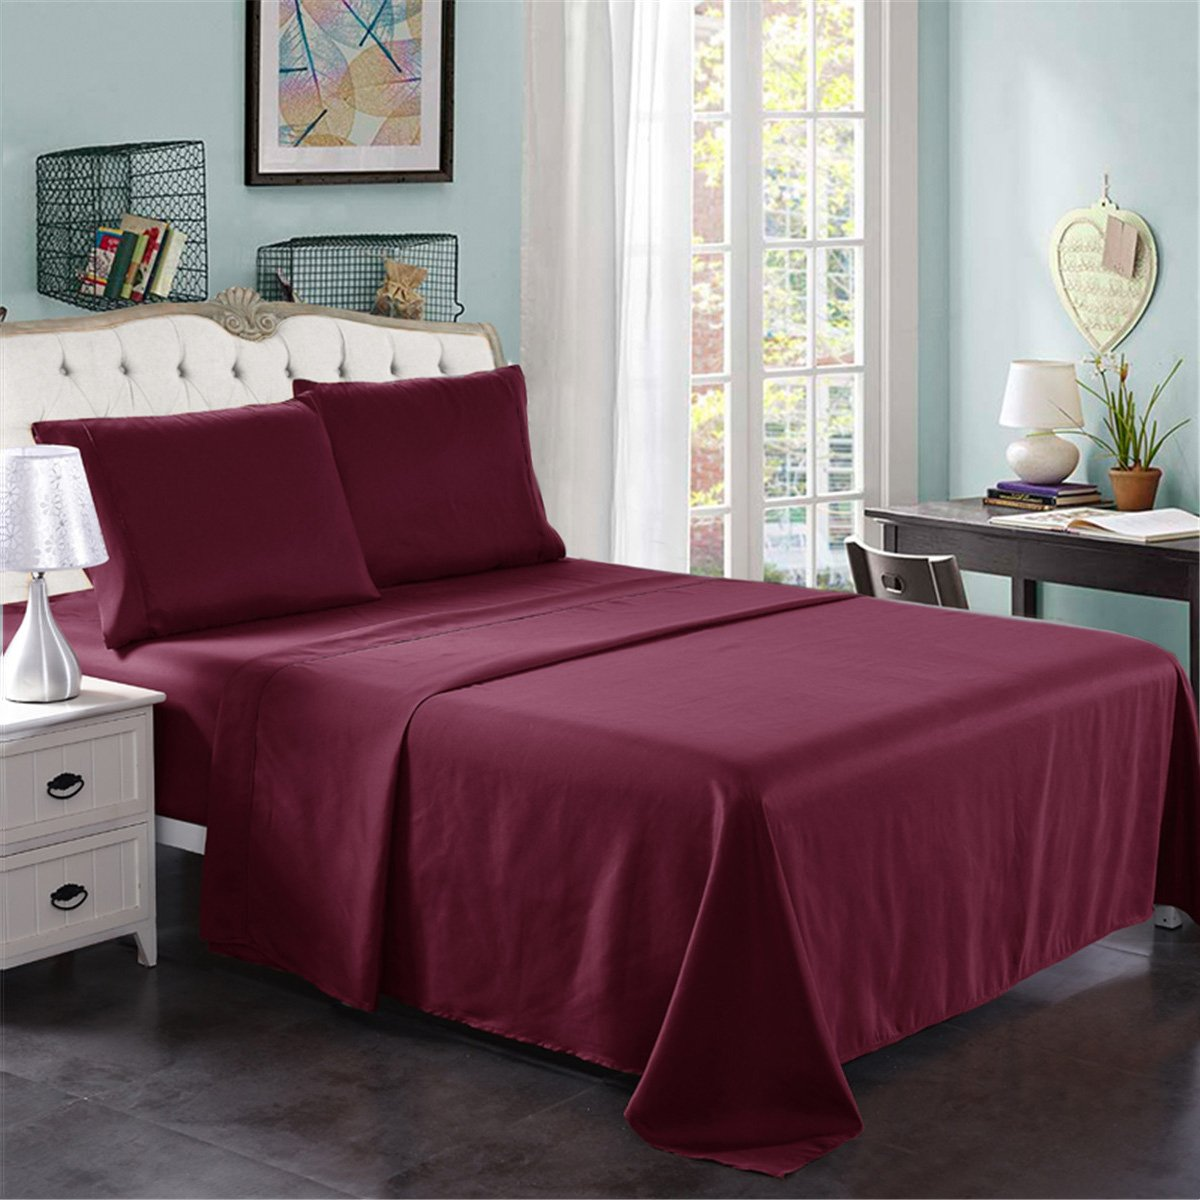 Queen Size Bed Sheets Set Burgundy, JML Hotel Luxury Bed Sheets - 4 Pieces